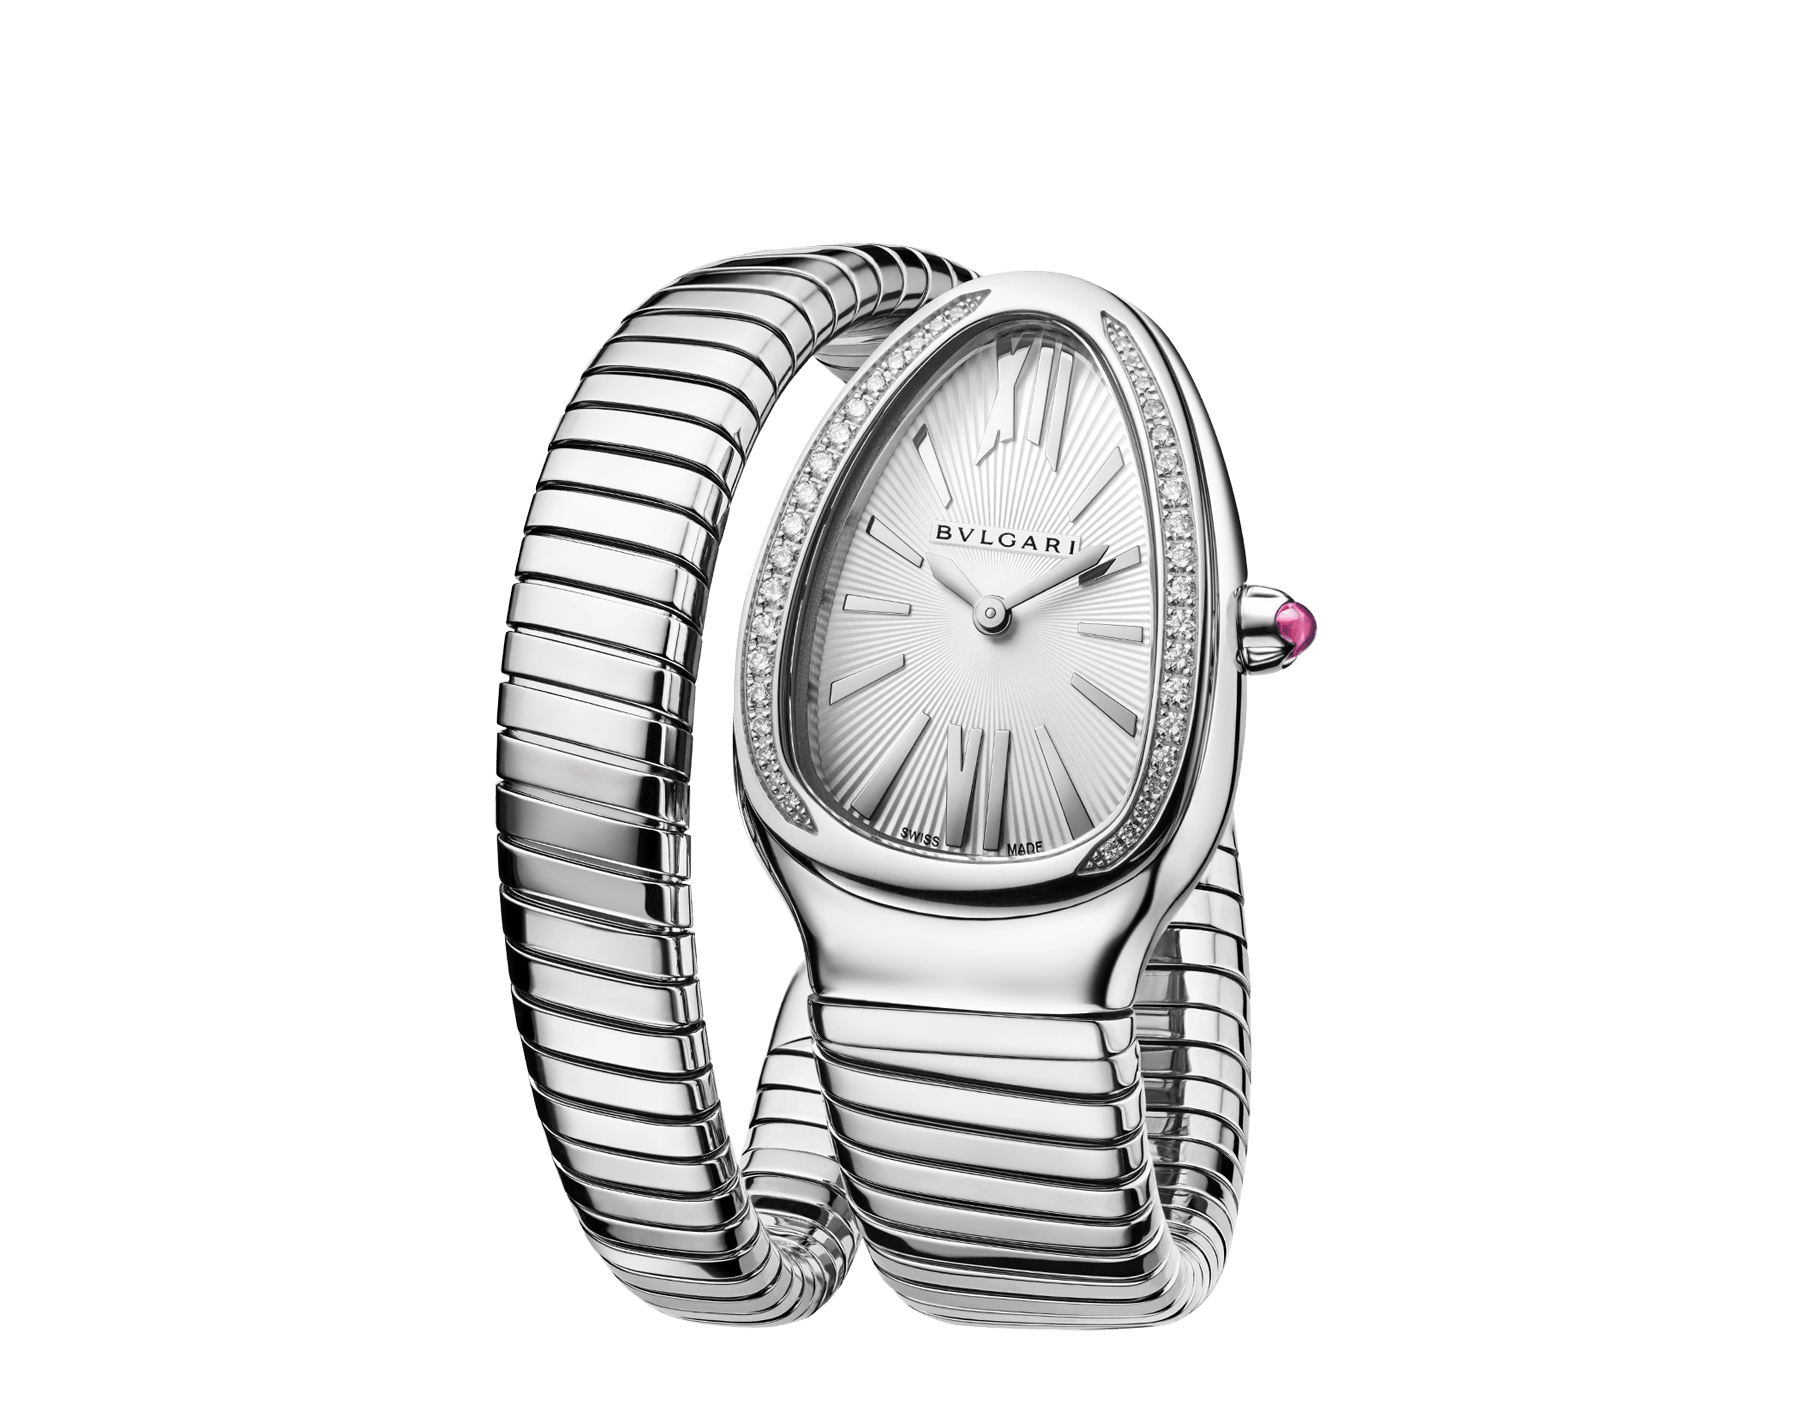 Serpenti Tubogas single spiral watch in stainless steel case and bracelet, with silver opaline dial. Large size. SrpntTubogas-white-dial1 image 2